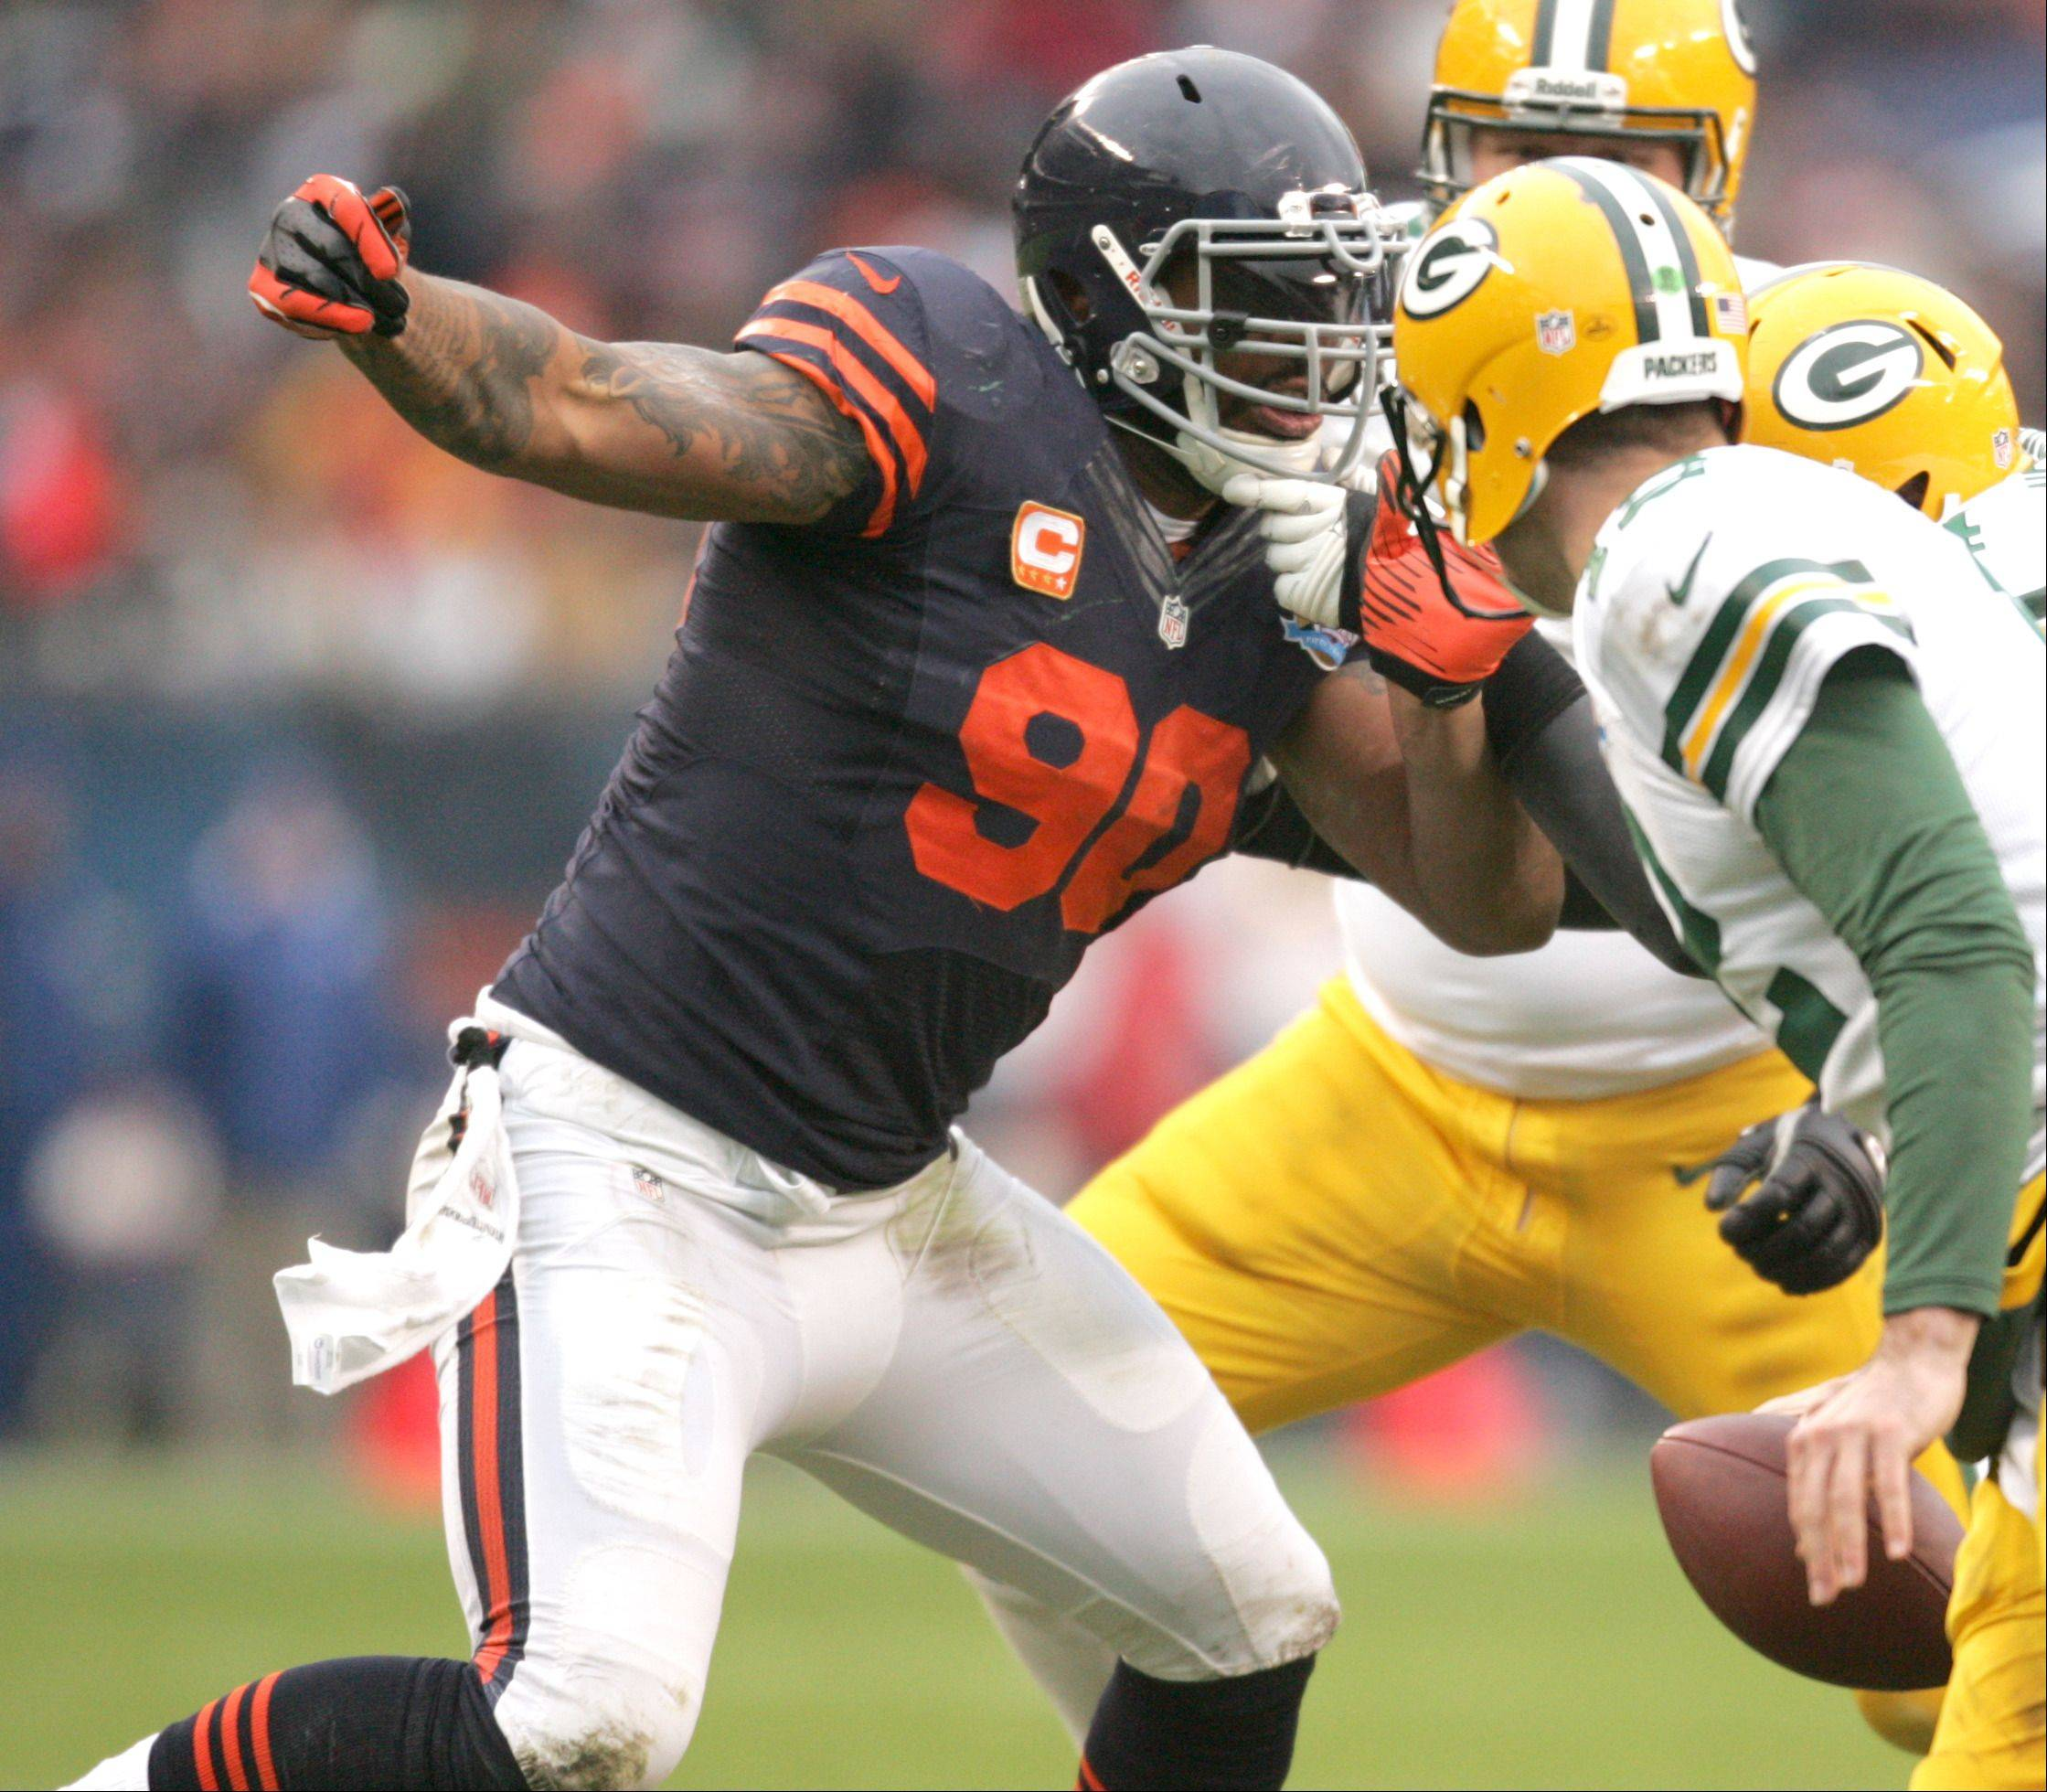 Bears defensive end Julius Peppers was named to his eighth Pro Bowl on Wednesday.